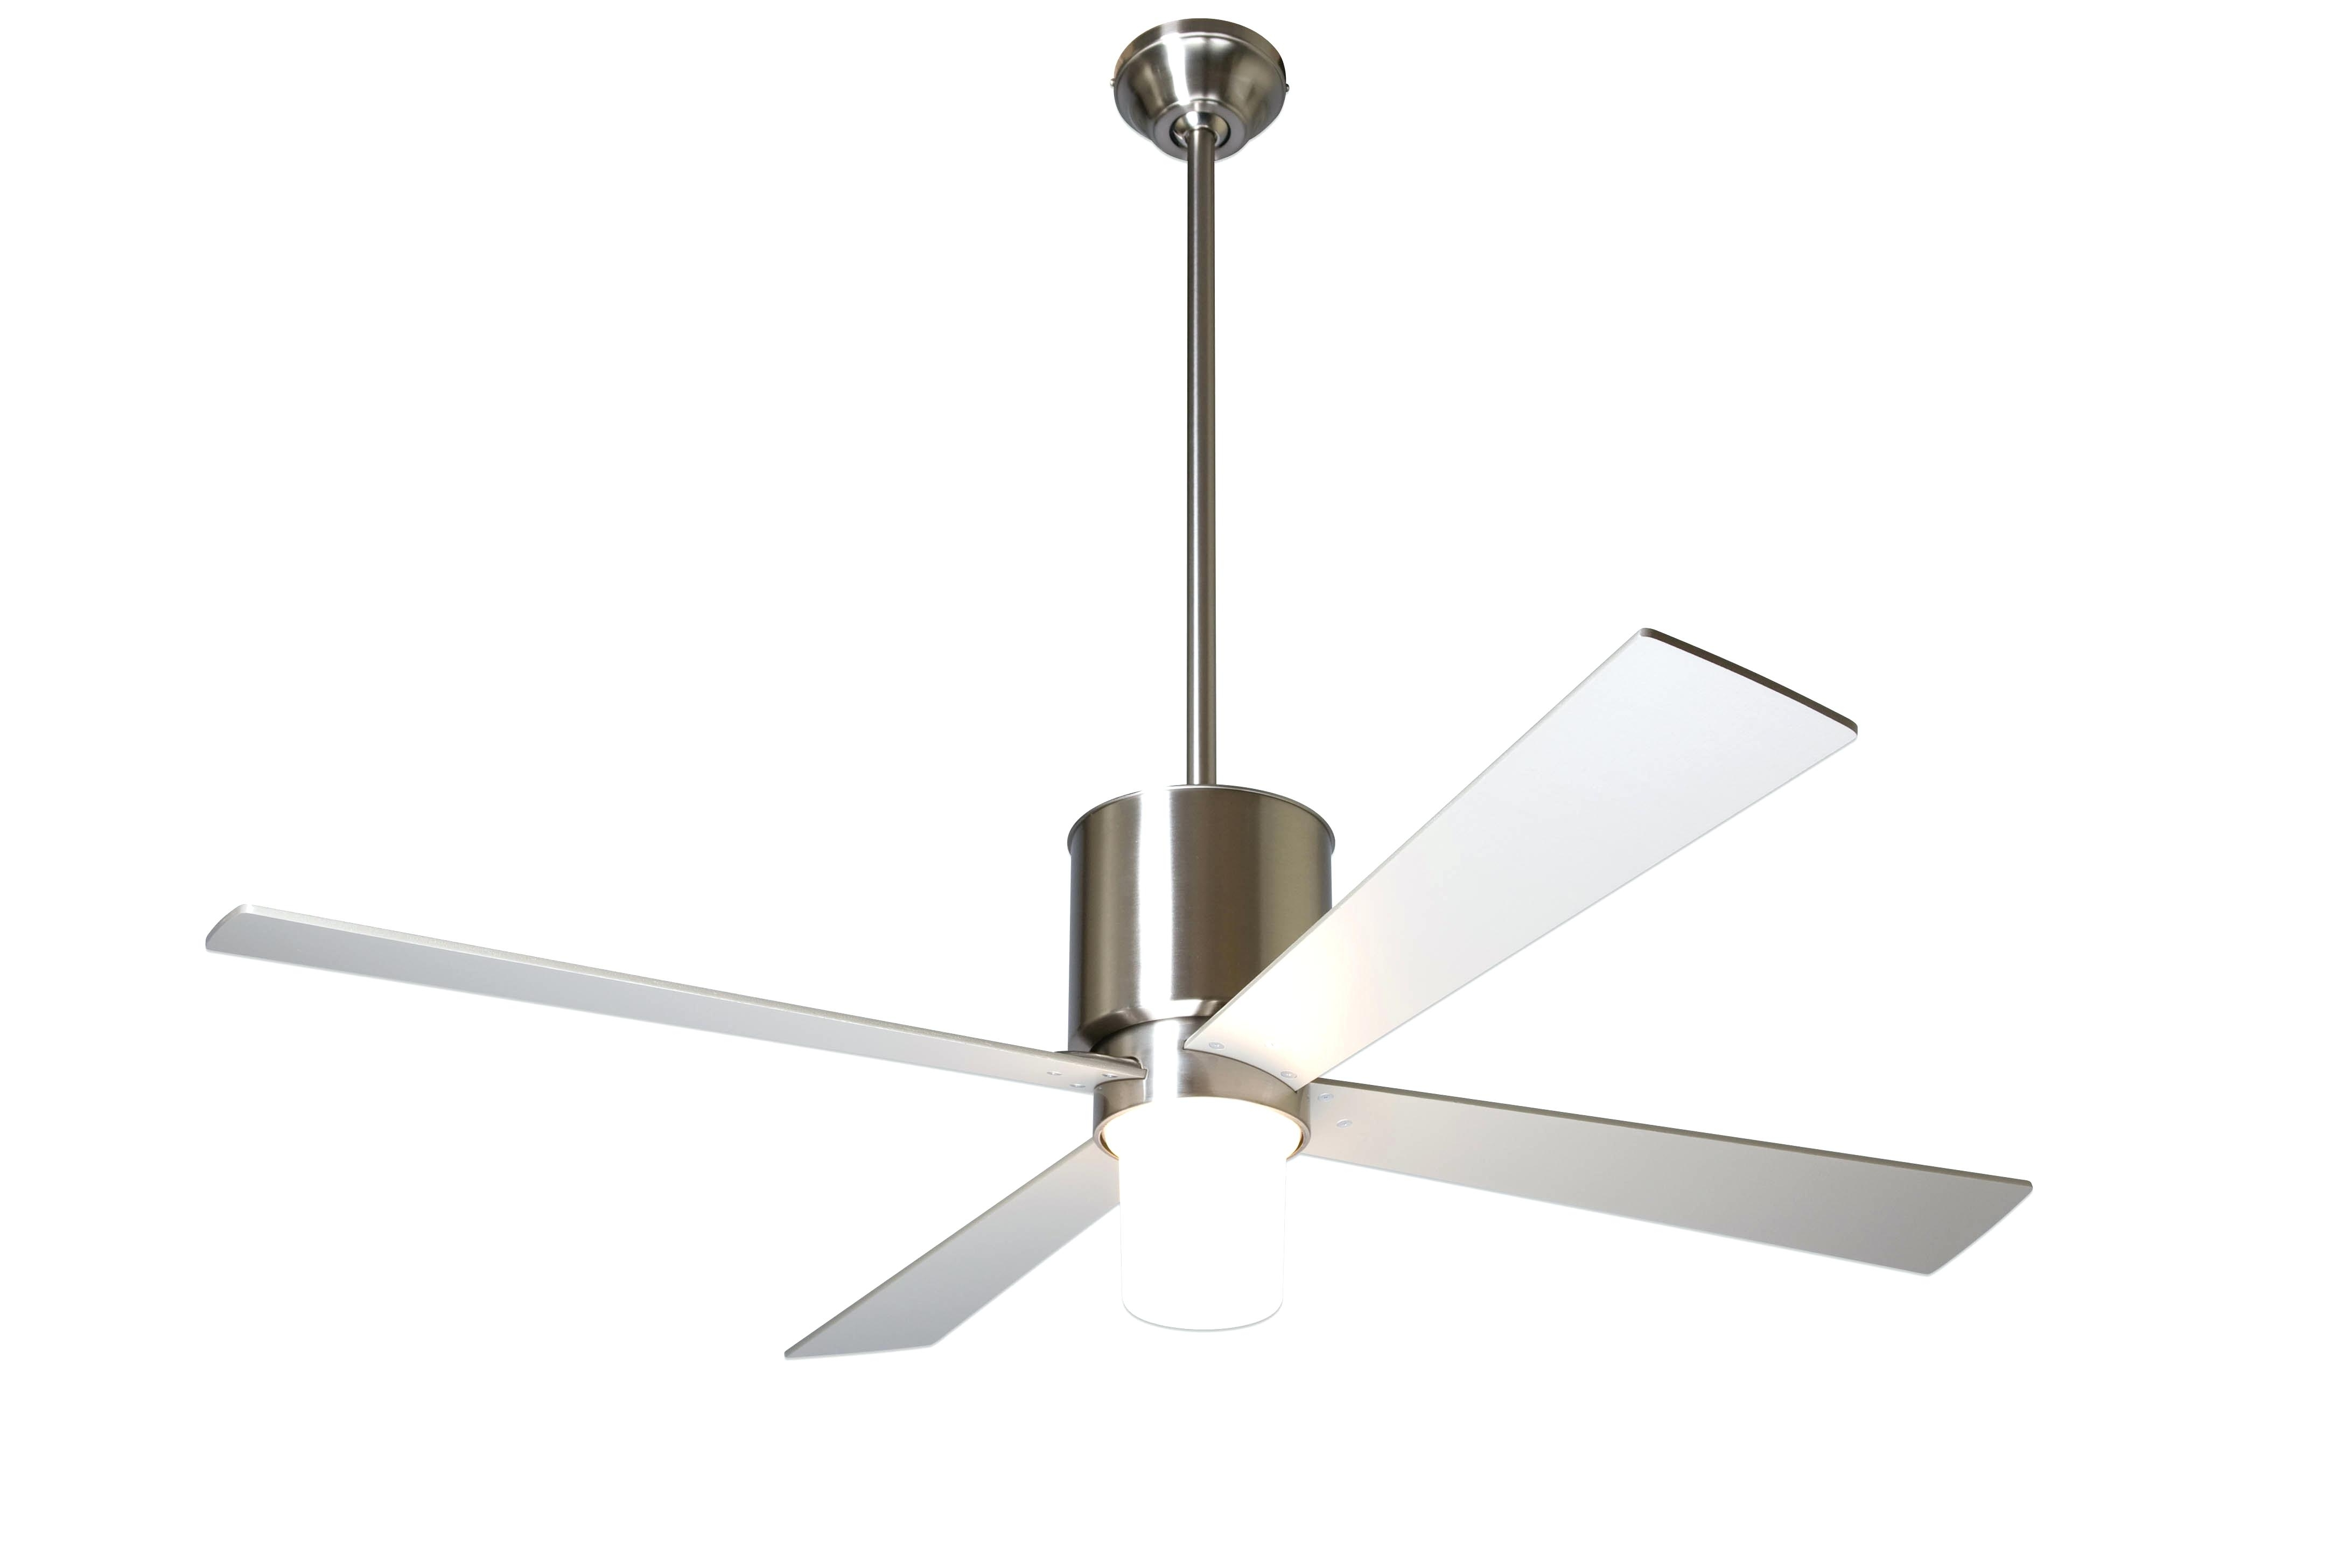 Outdoor Ceiling Fans With Bright Lights In Latest Ceiling Fans : Small Ceiling Fan With Bright X Light Fans Led Bulbs (View 10 of 20)